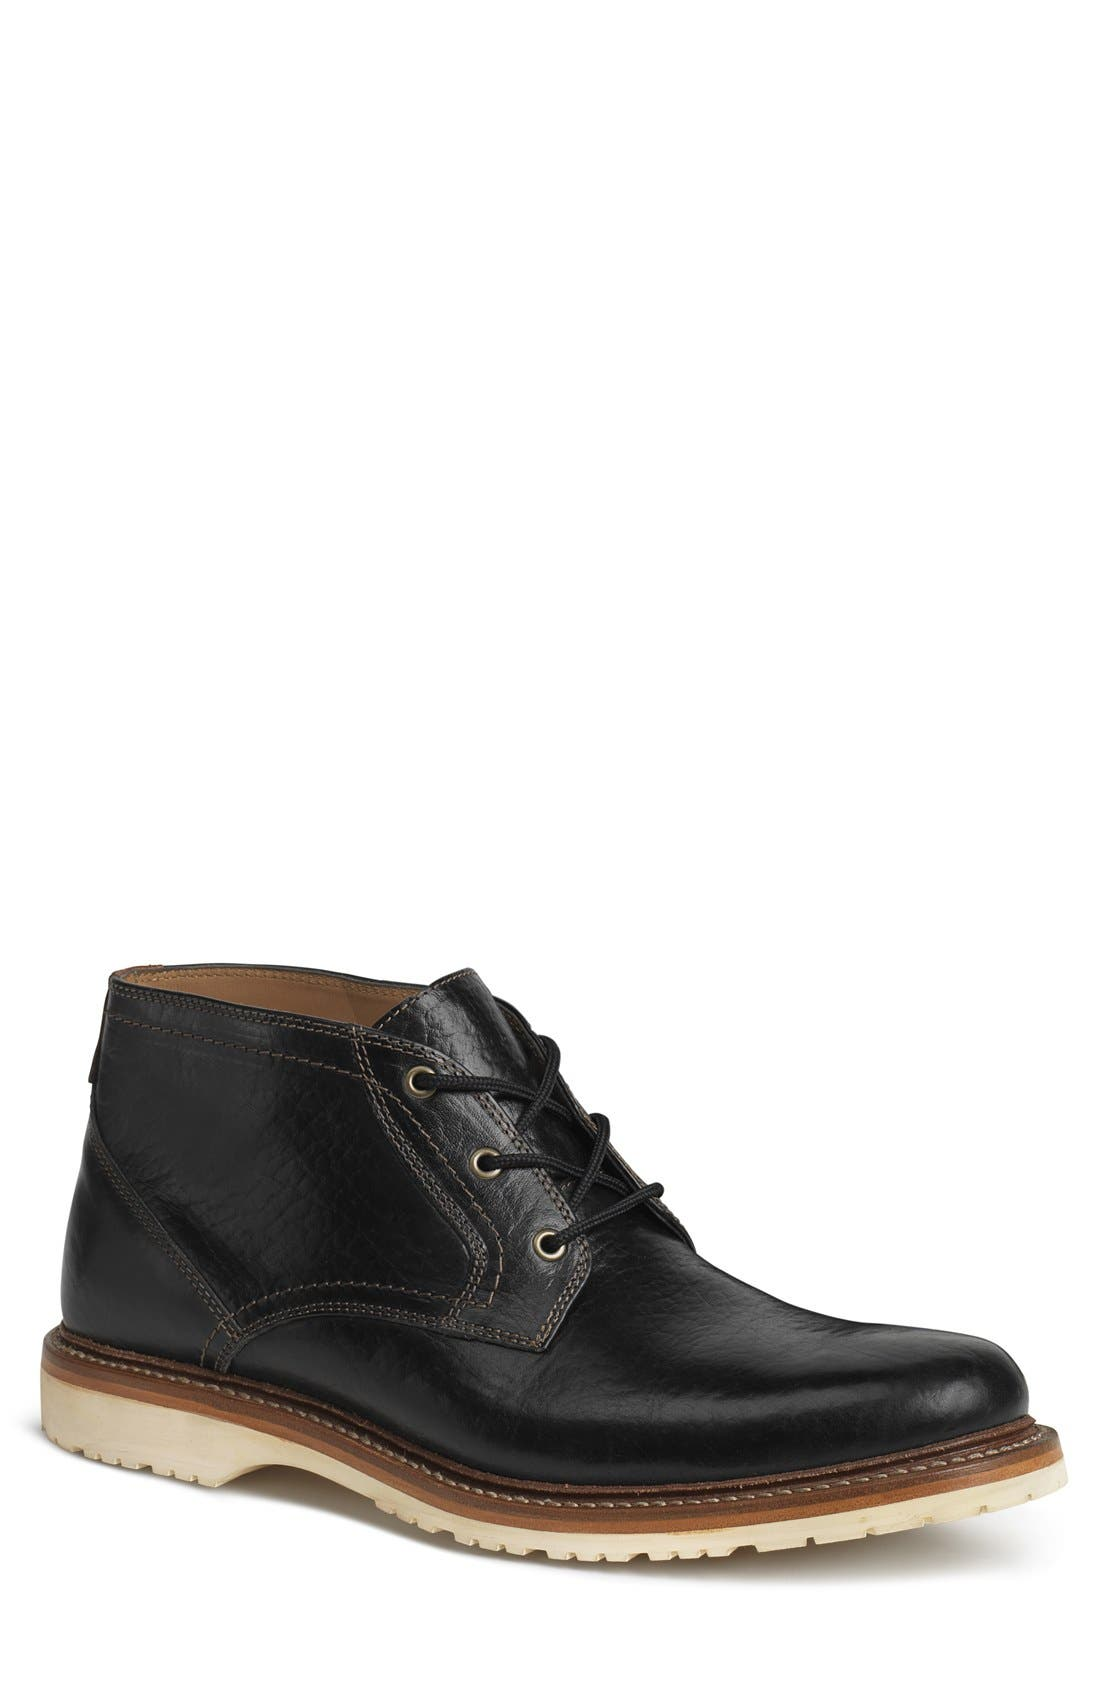 Arlington Chukka Boot,                         Main,                         color, Black